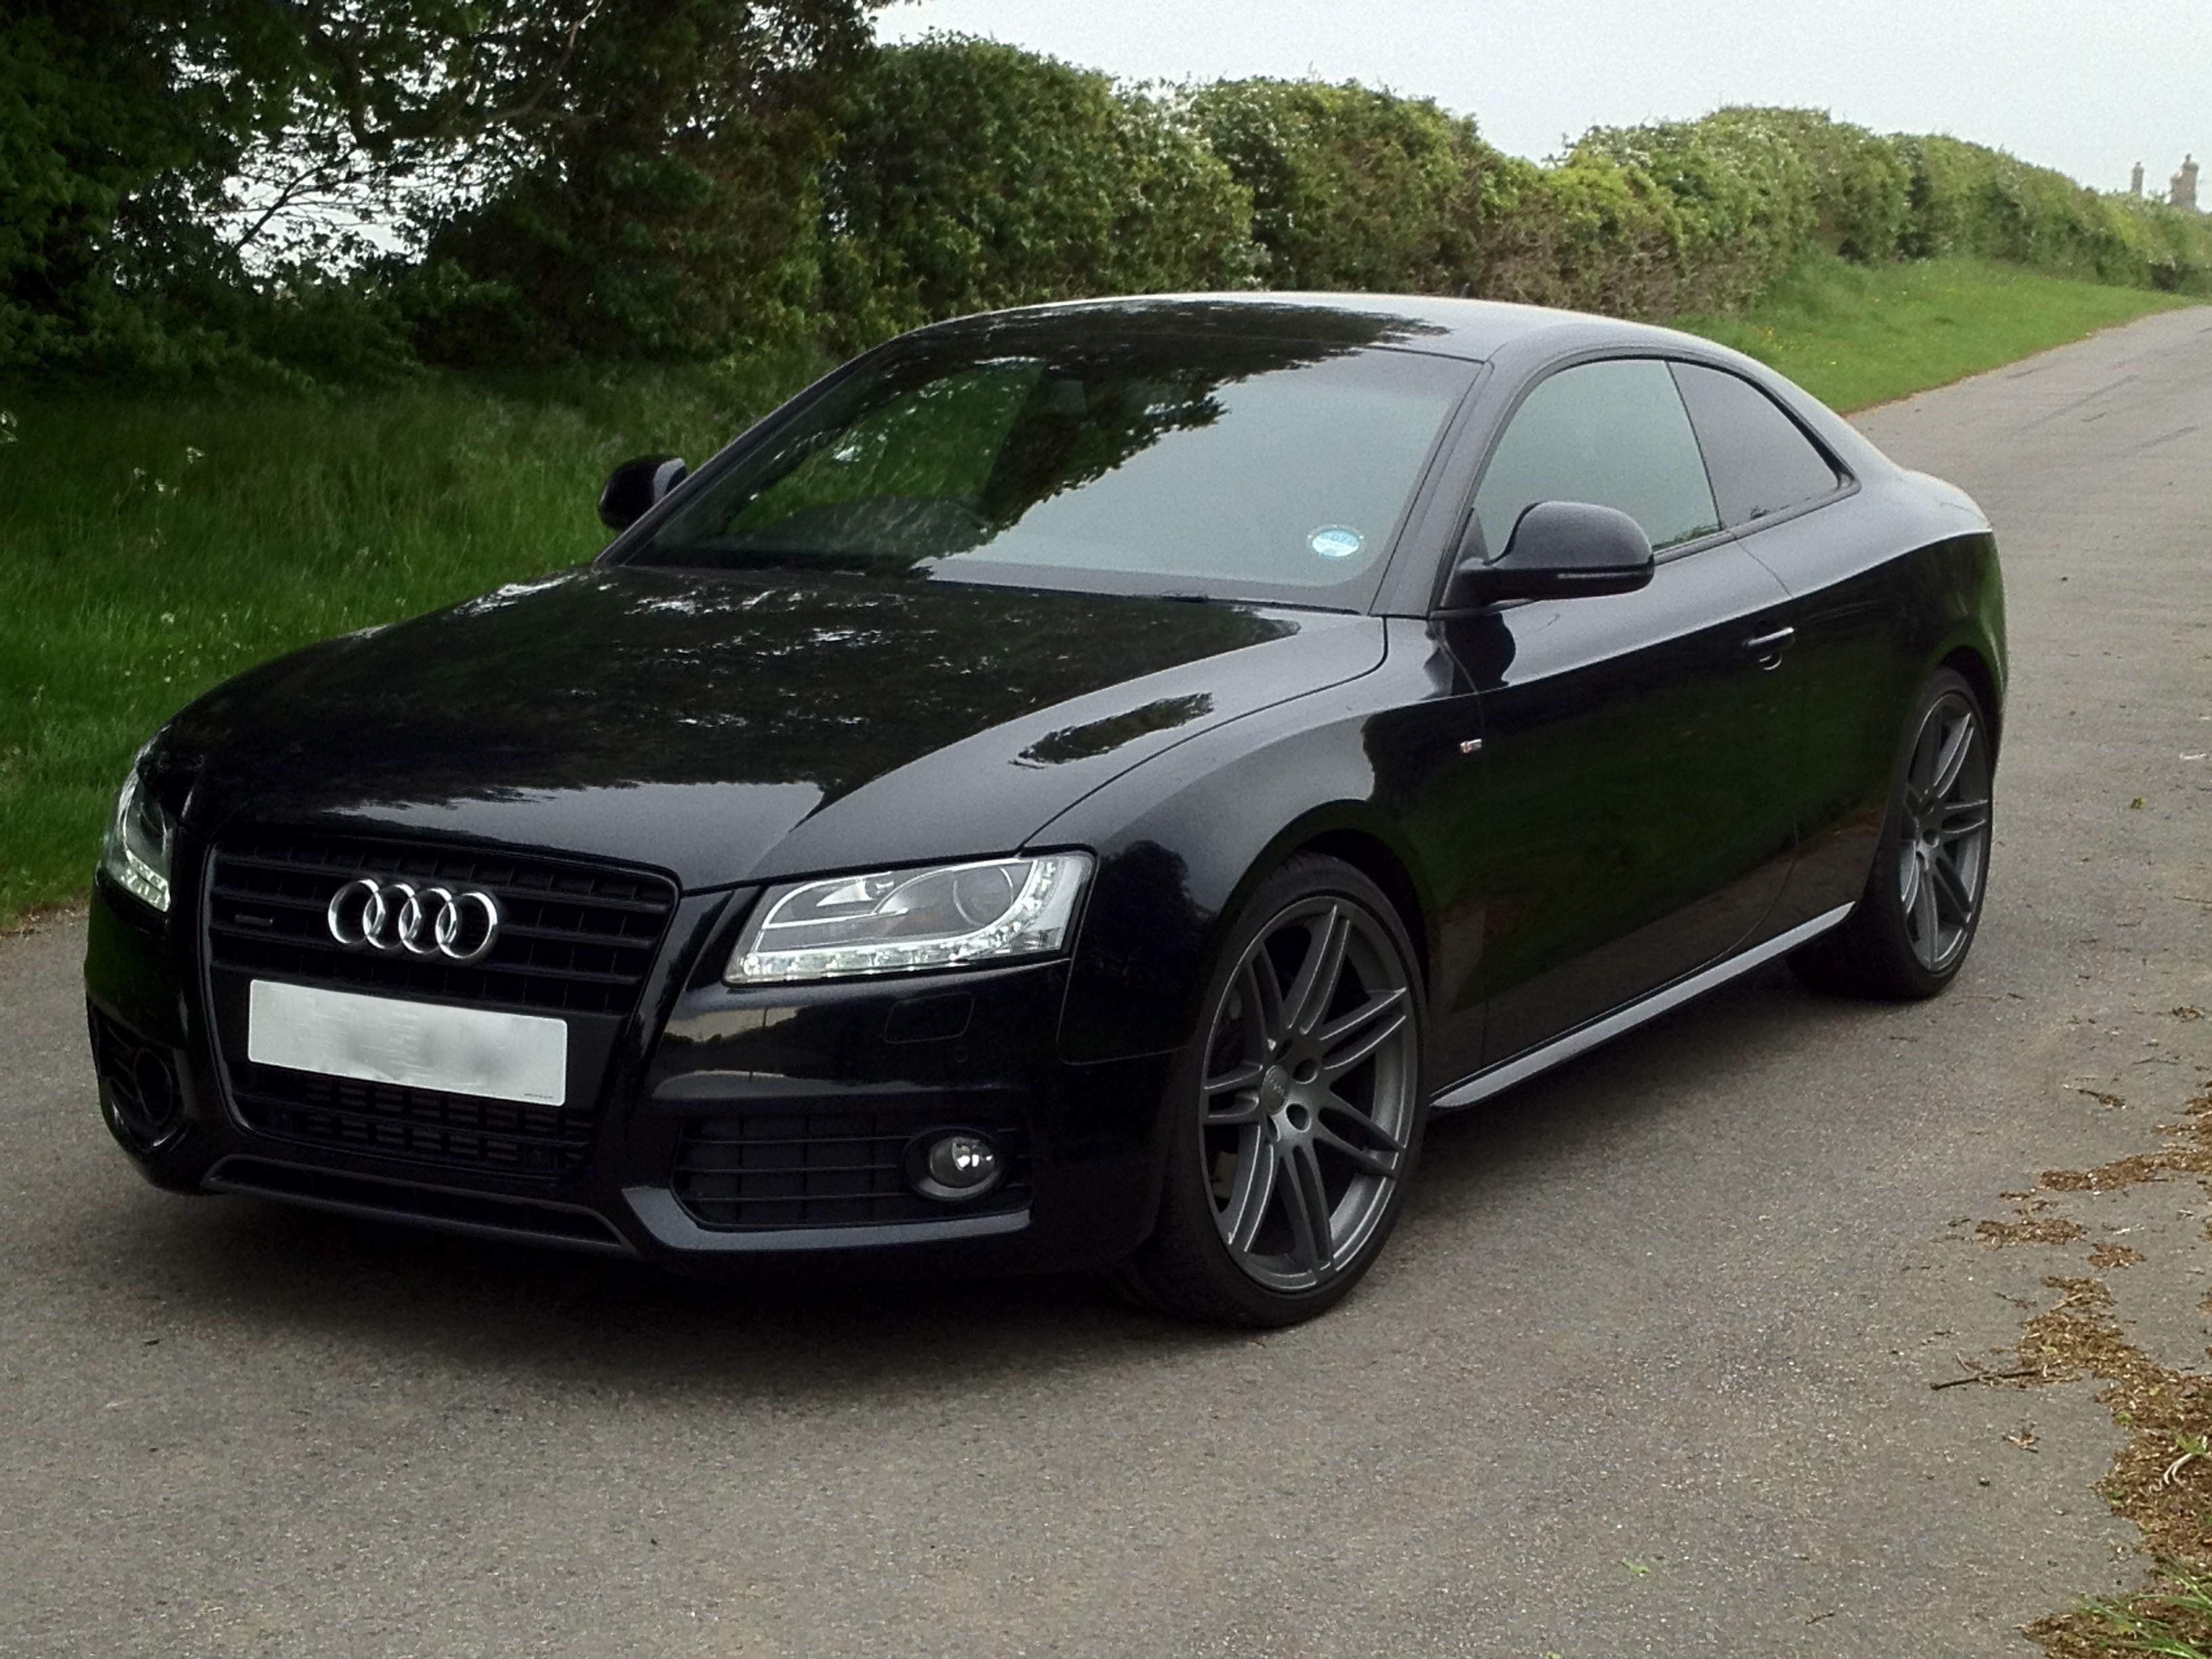 watch sussex tfsi quattro sportback cmc for cars tronic at s audi brighton near sale